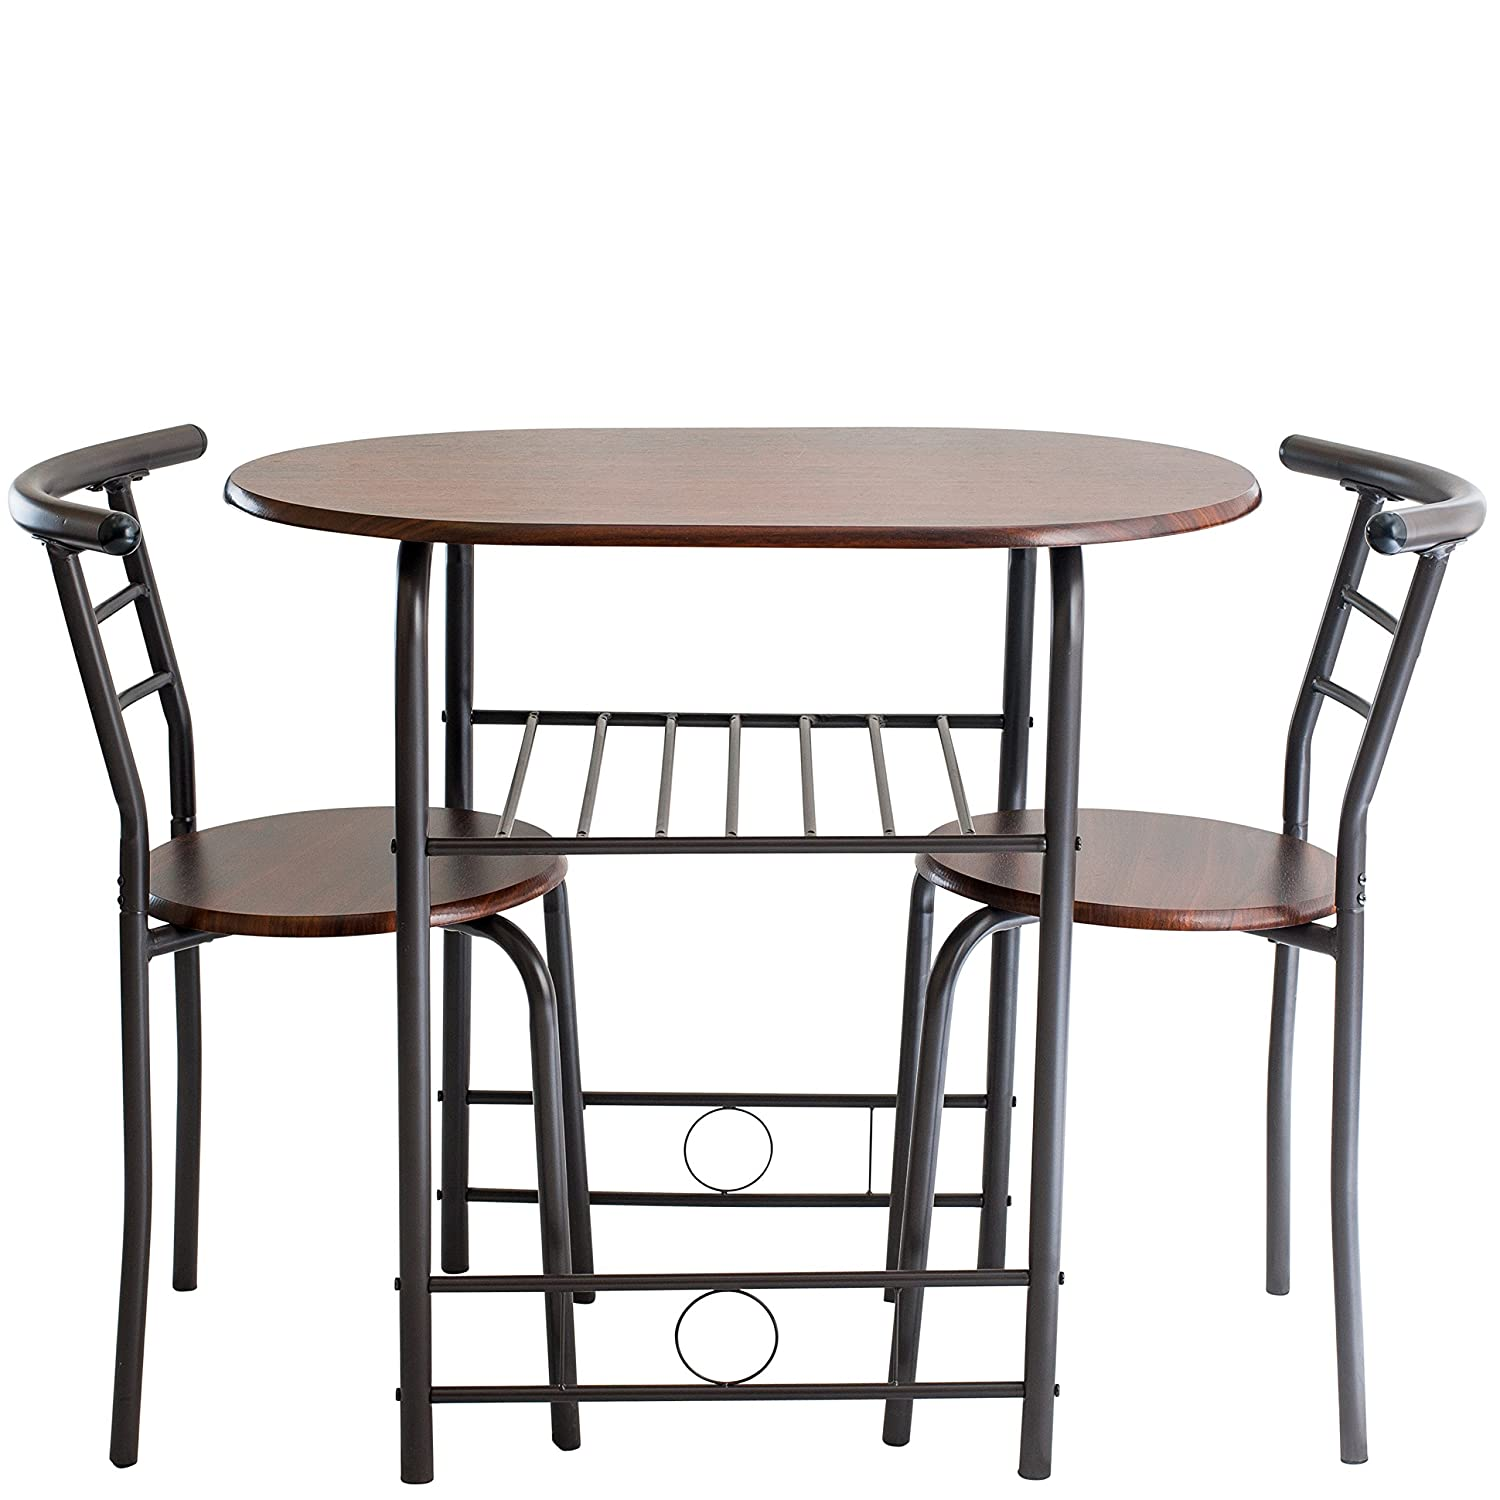 Handi Craft 725791821077 3 Piece Compact Dining Set With Table And Matching  Chairs, Dark